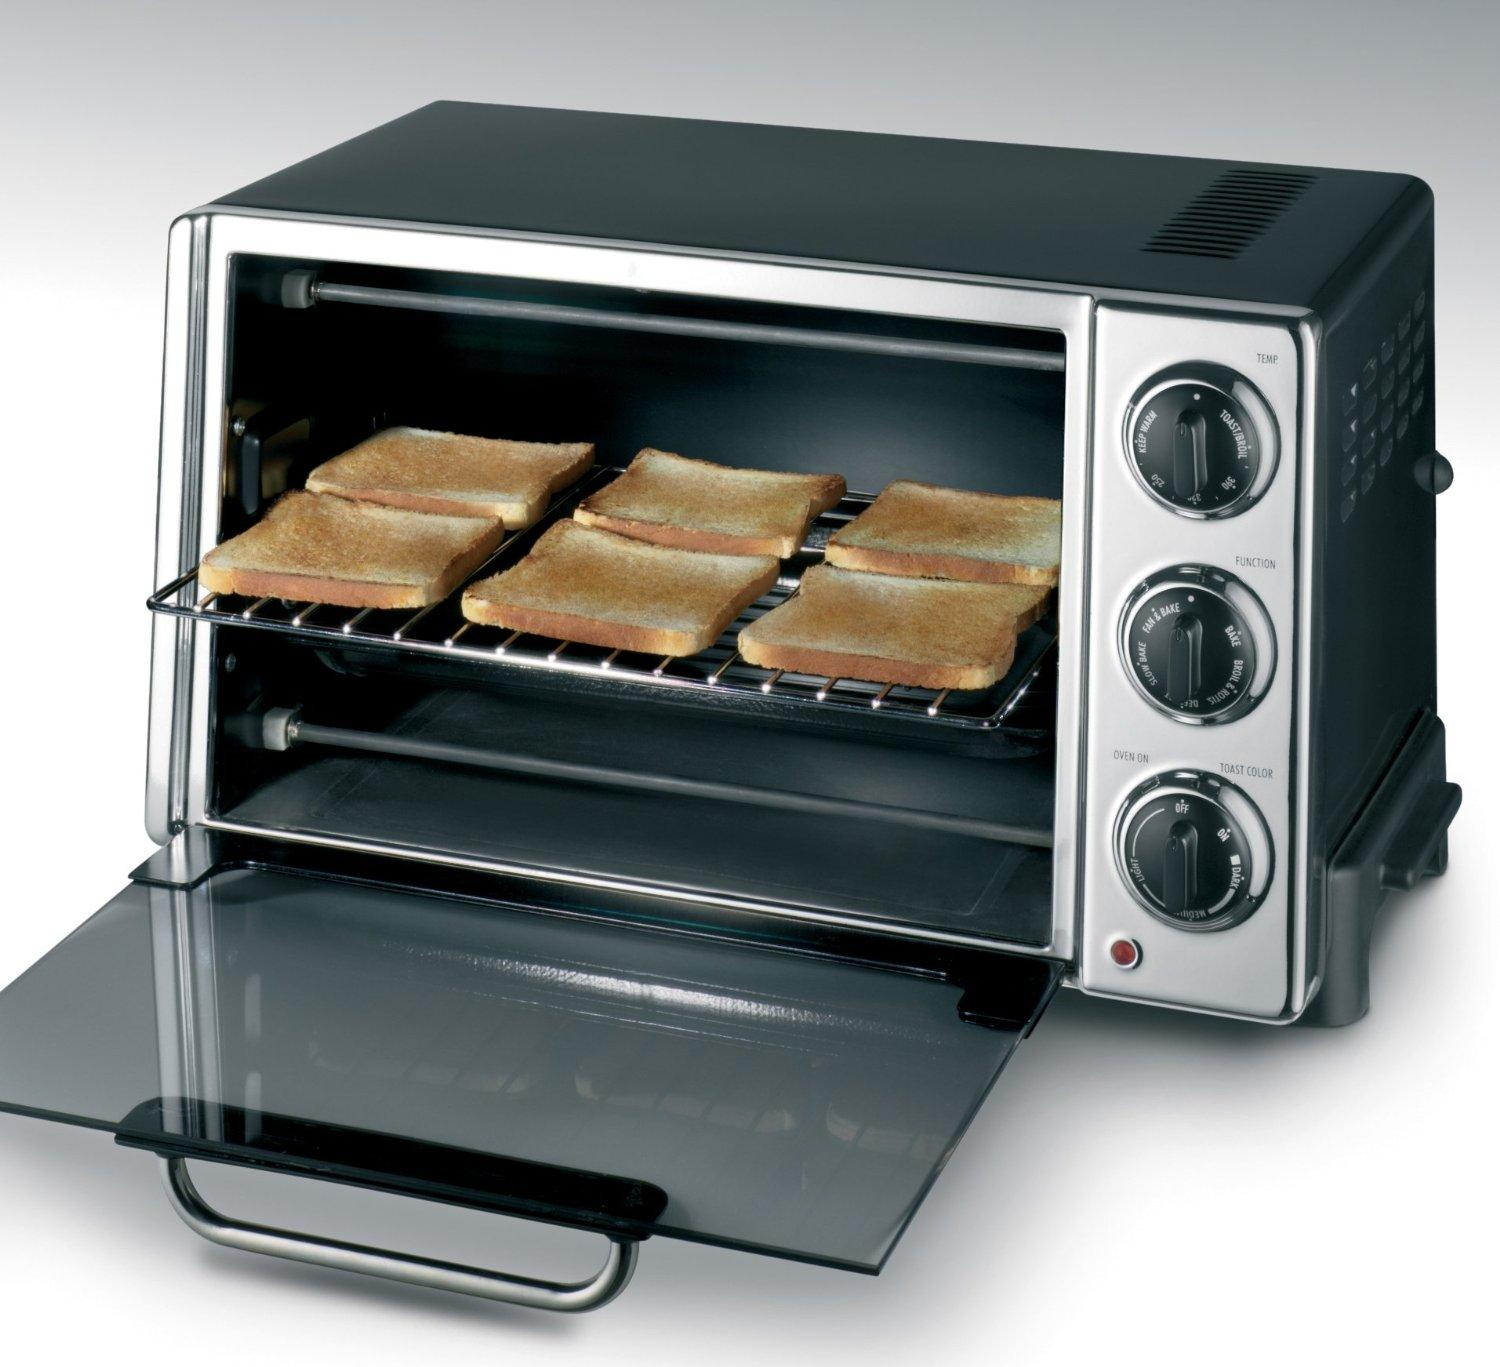 Countertop Oven Delonghi : DeLonghi RO2058 6-Slice Convection Toaster Oven with Rotisserie